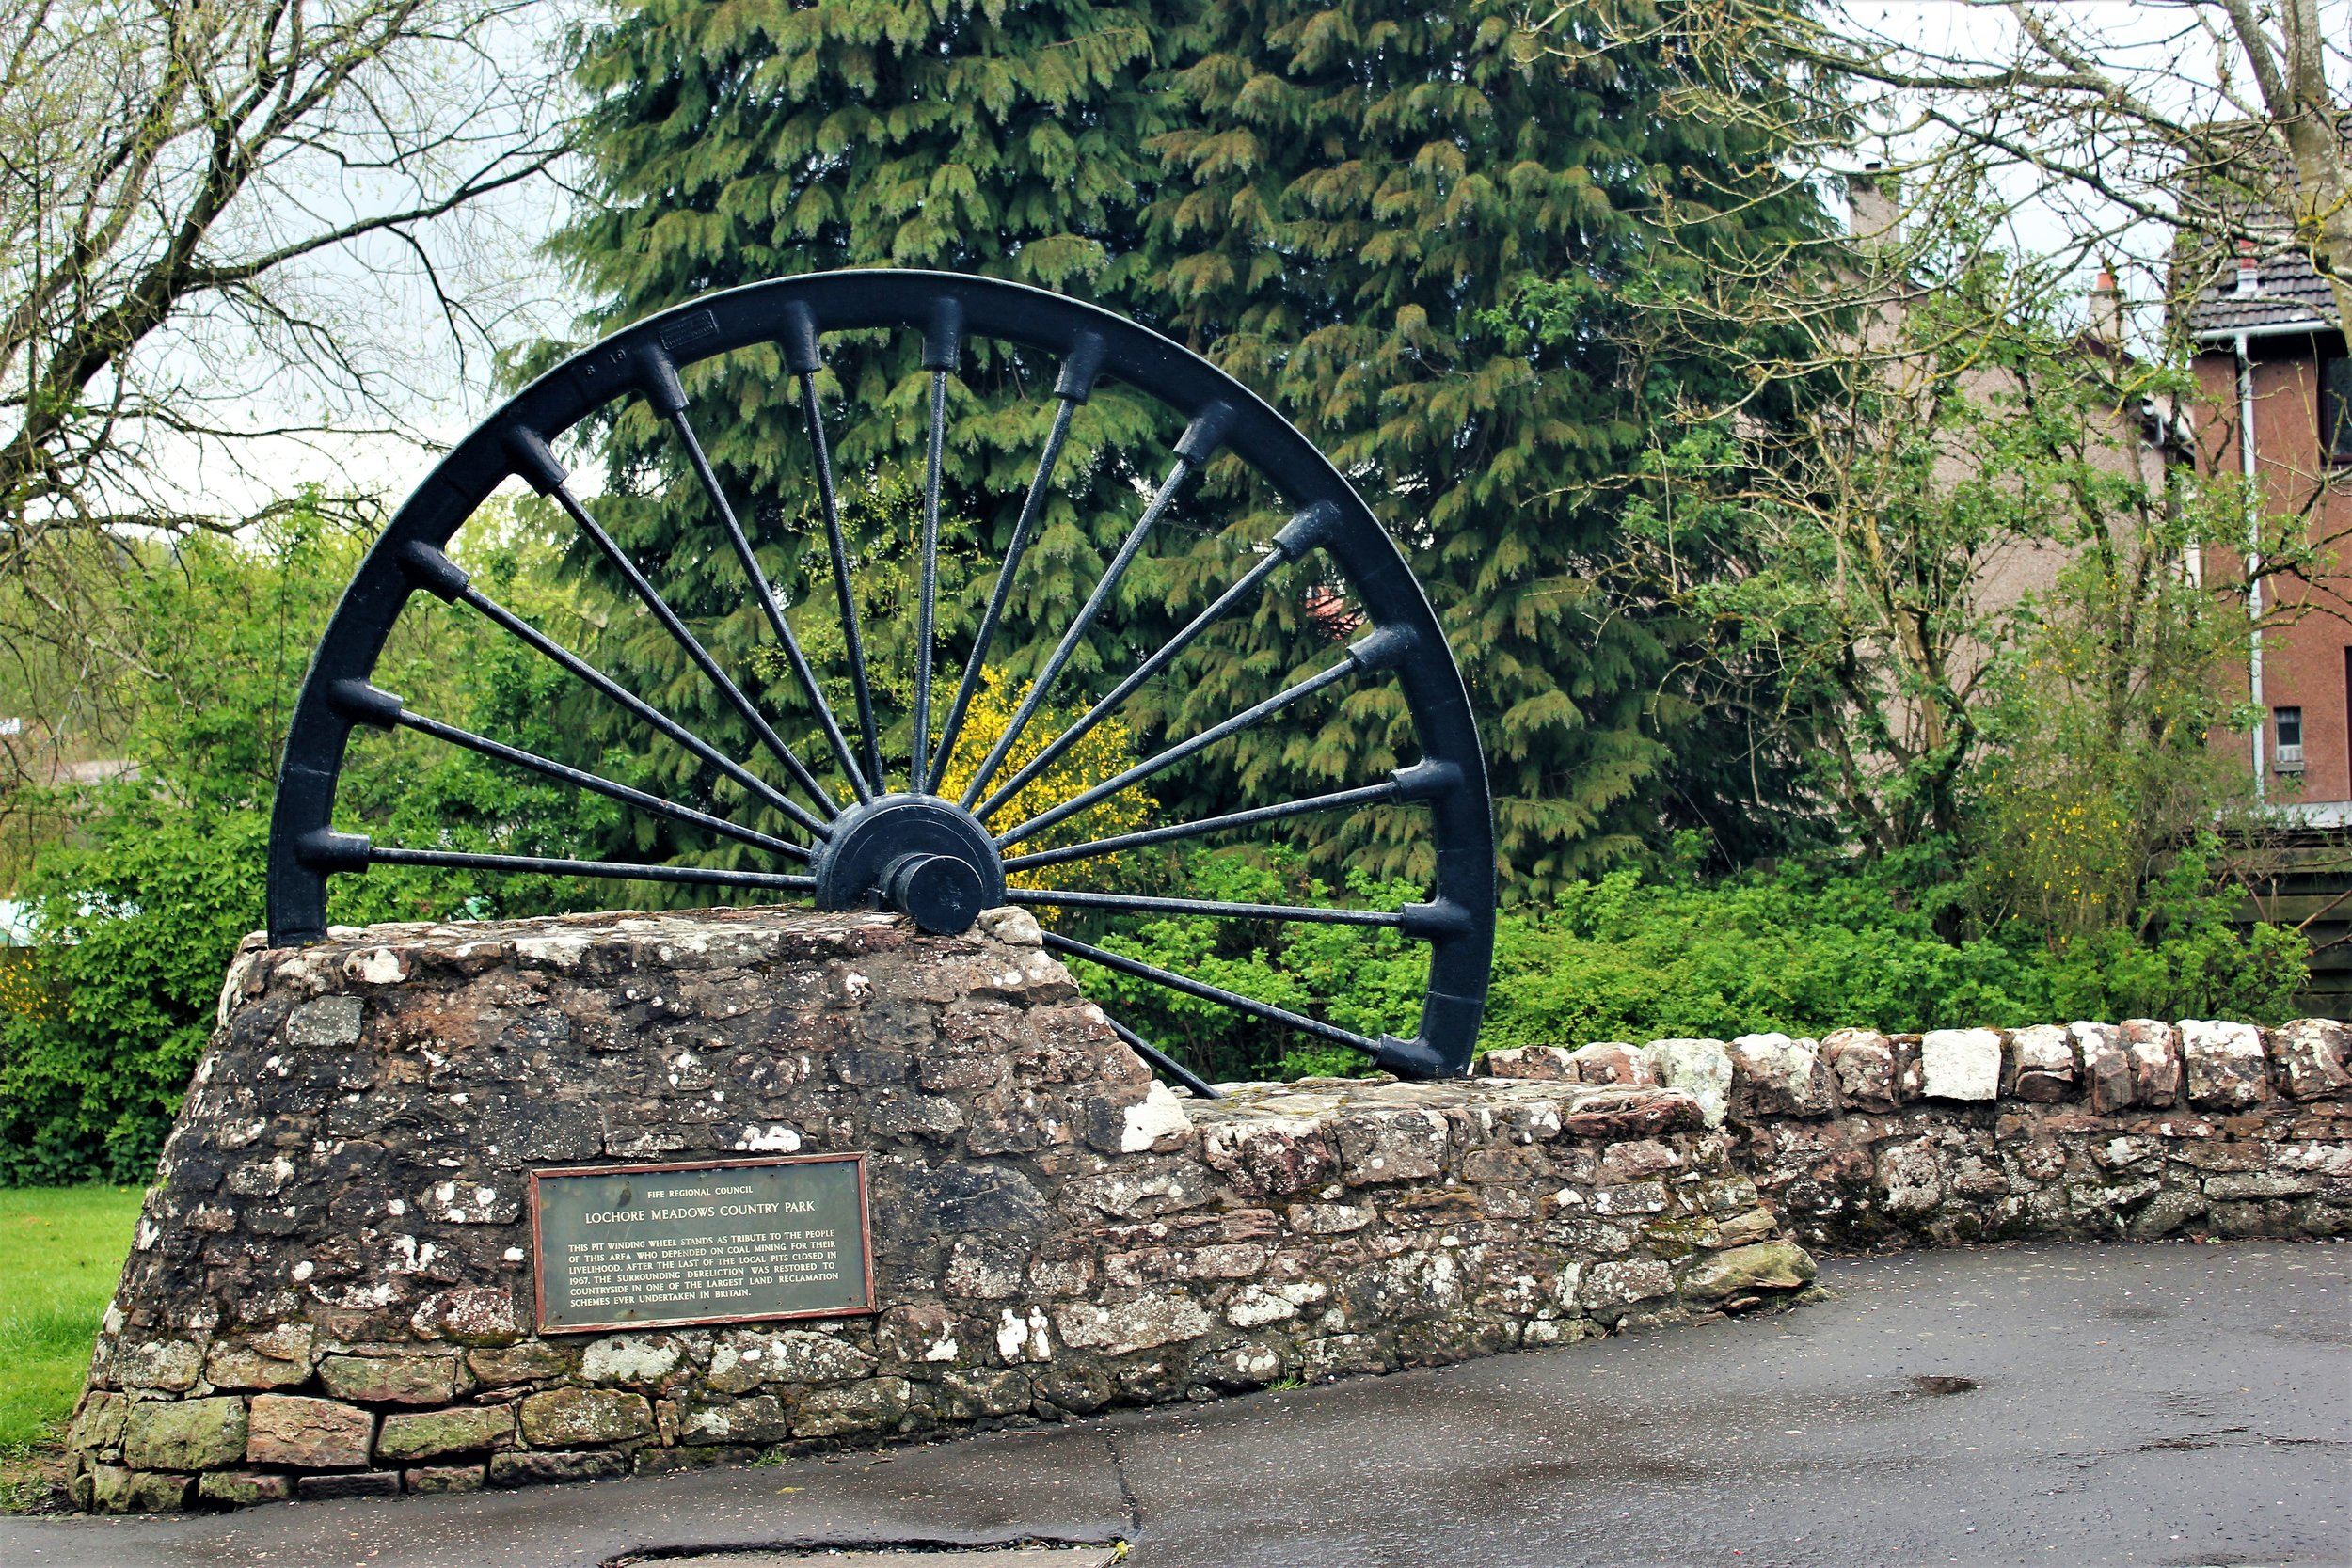 Winding wheel, exit/entry to Lochore Meadows Country Park